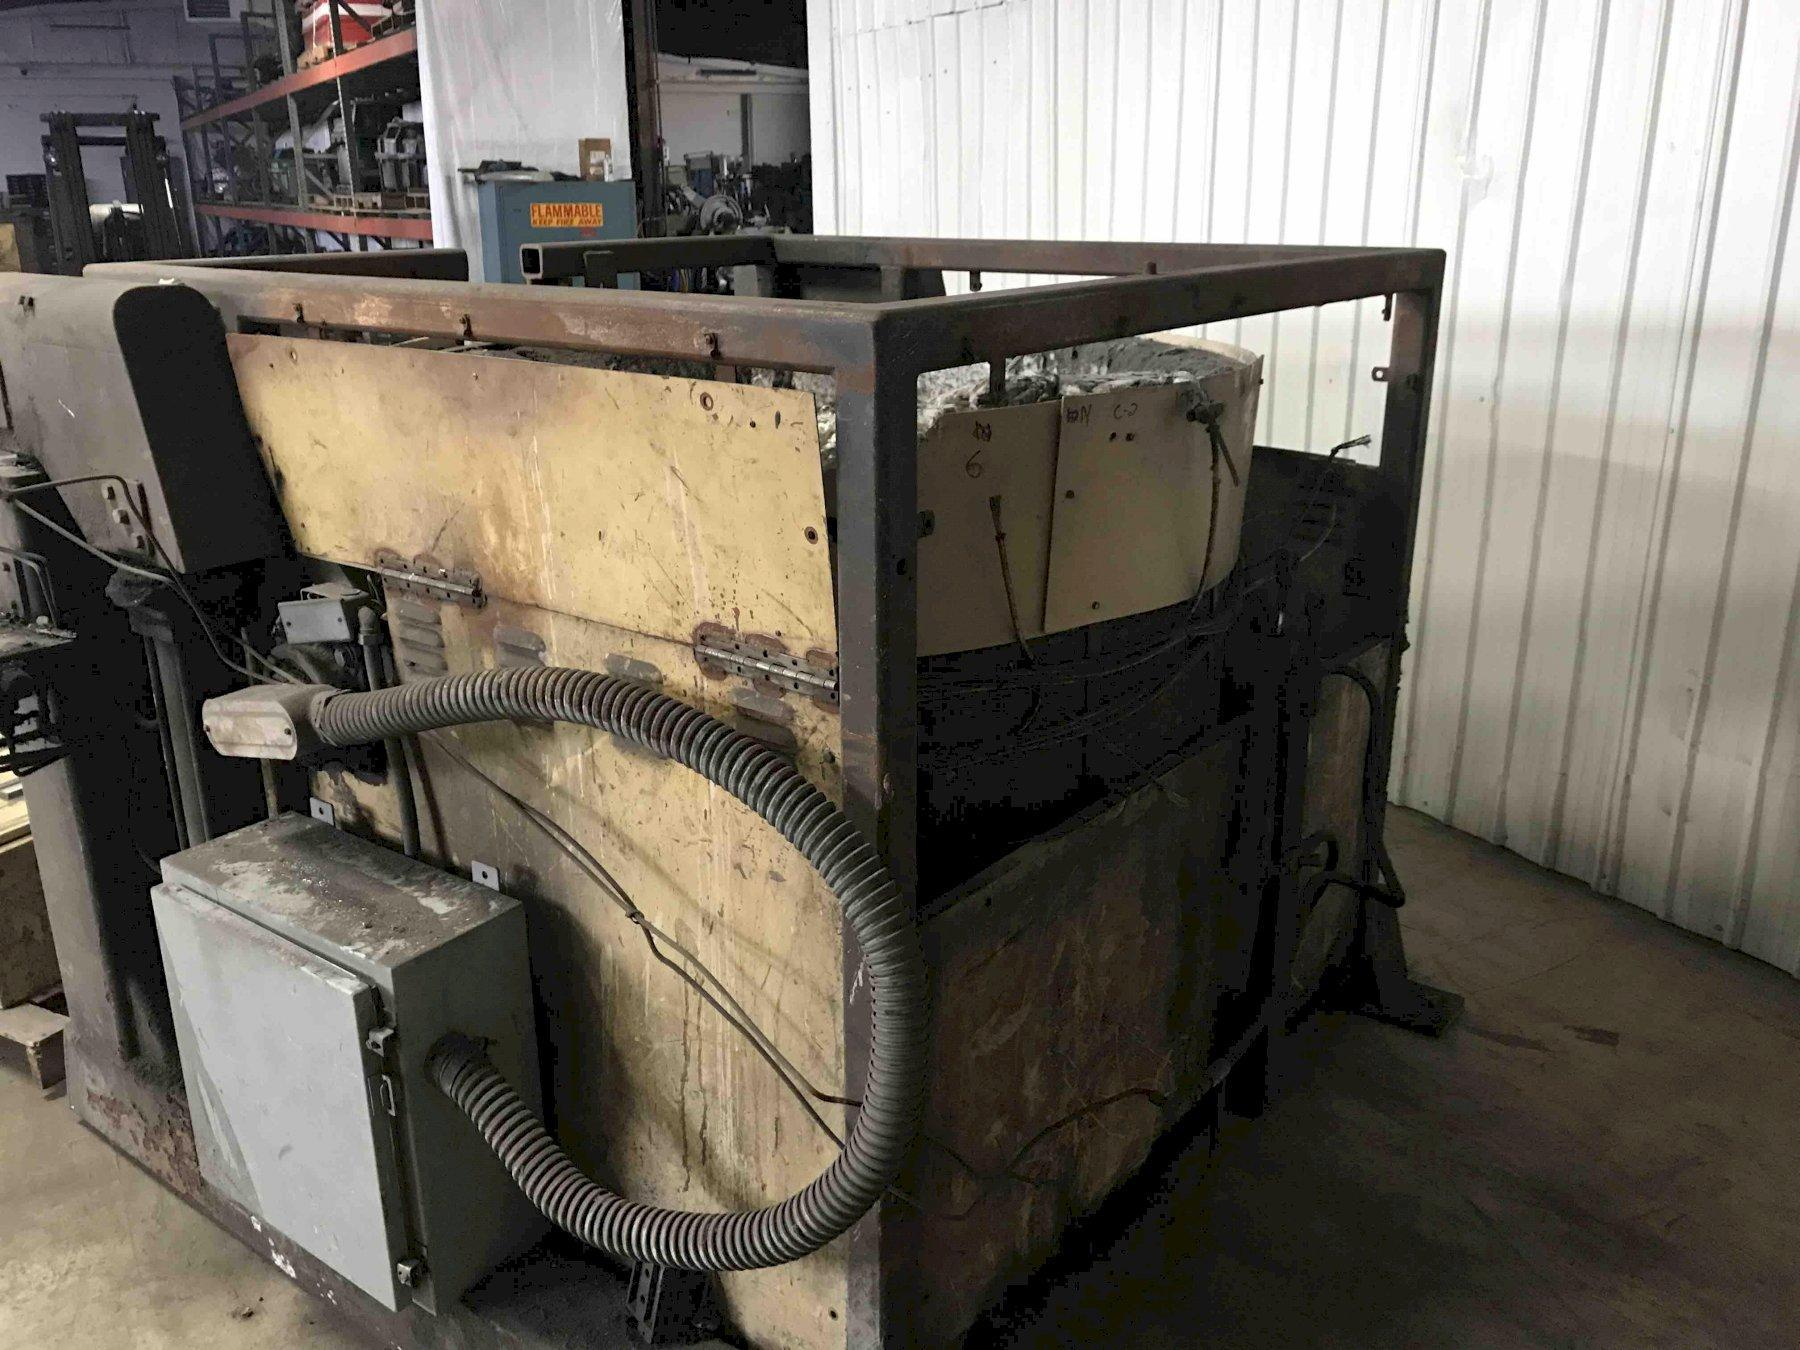 THERMTRONIX TR-1200 ELECTRIC RESISTANCE TILTING FURNACE WITH CONTROLS